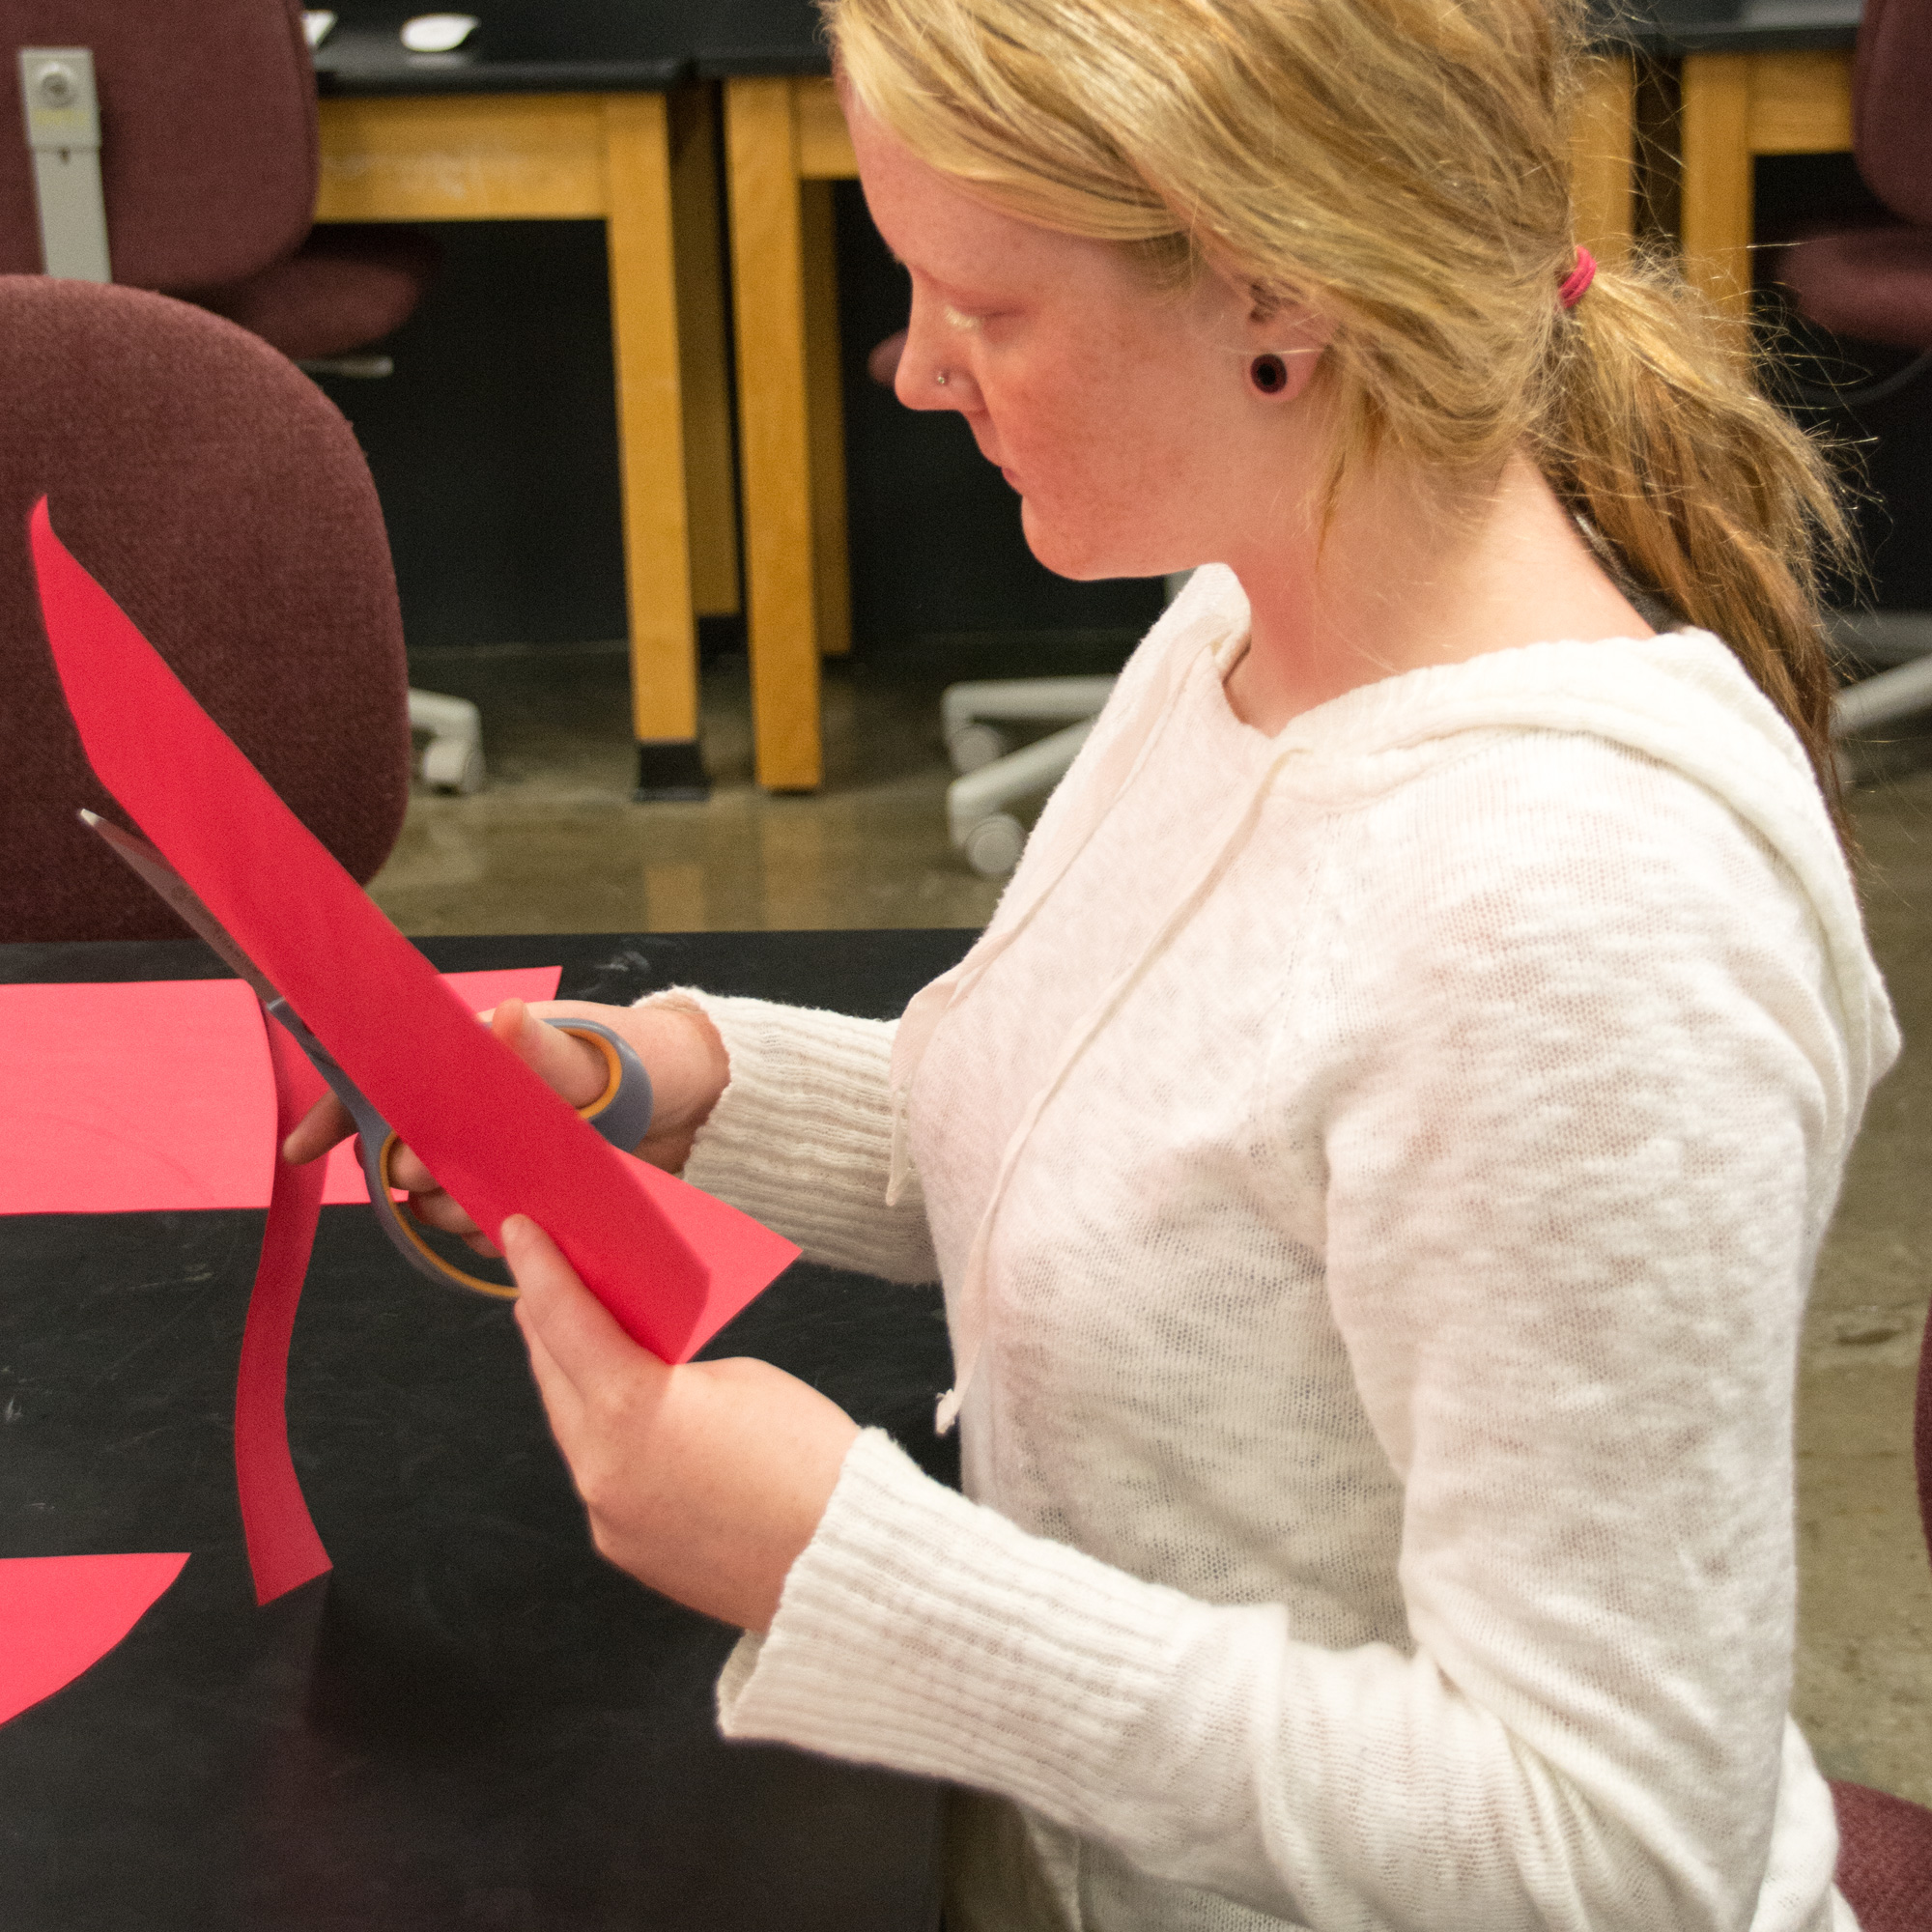 Student cutting red paper